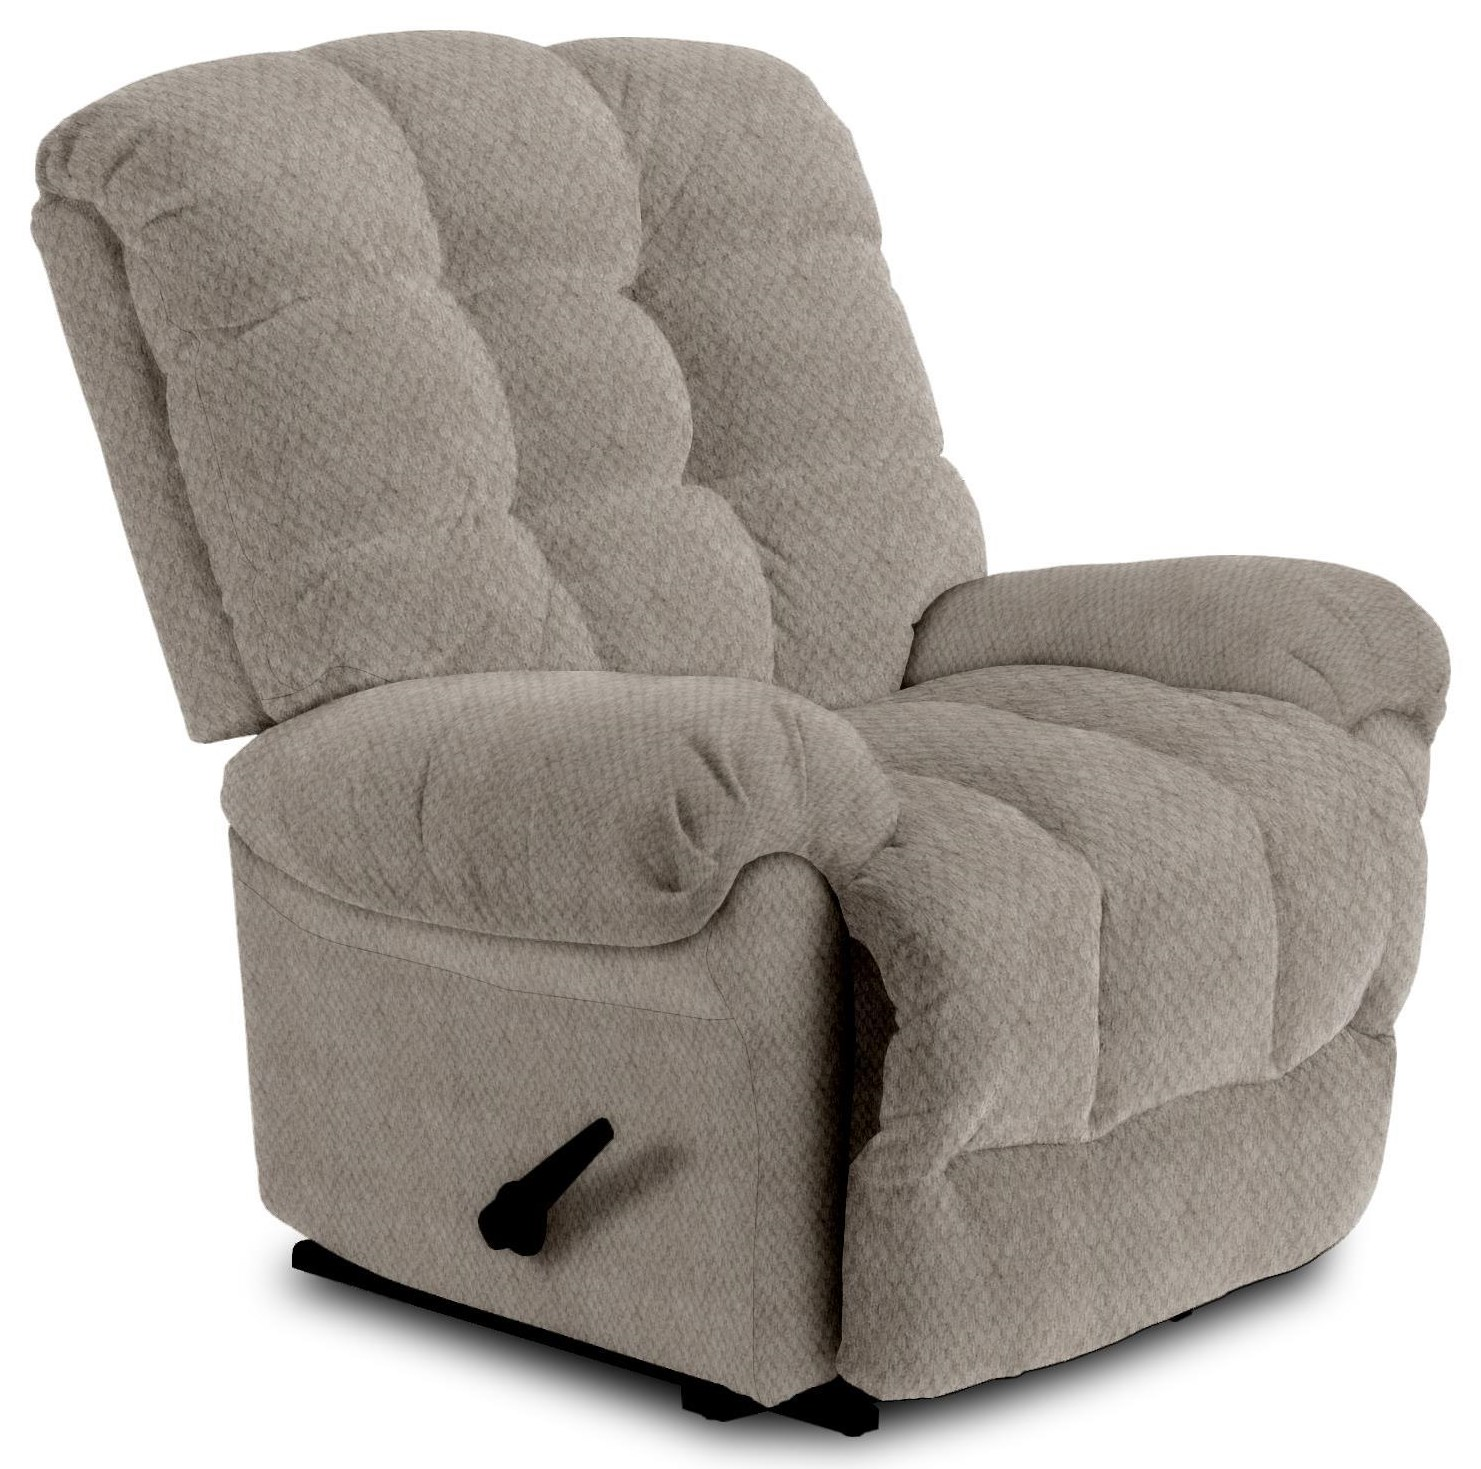 Denver Layflat Rocking Recliner by Best Home Furnishings at Crowley Furniture & Mattress